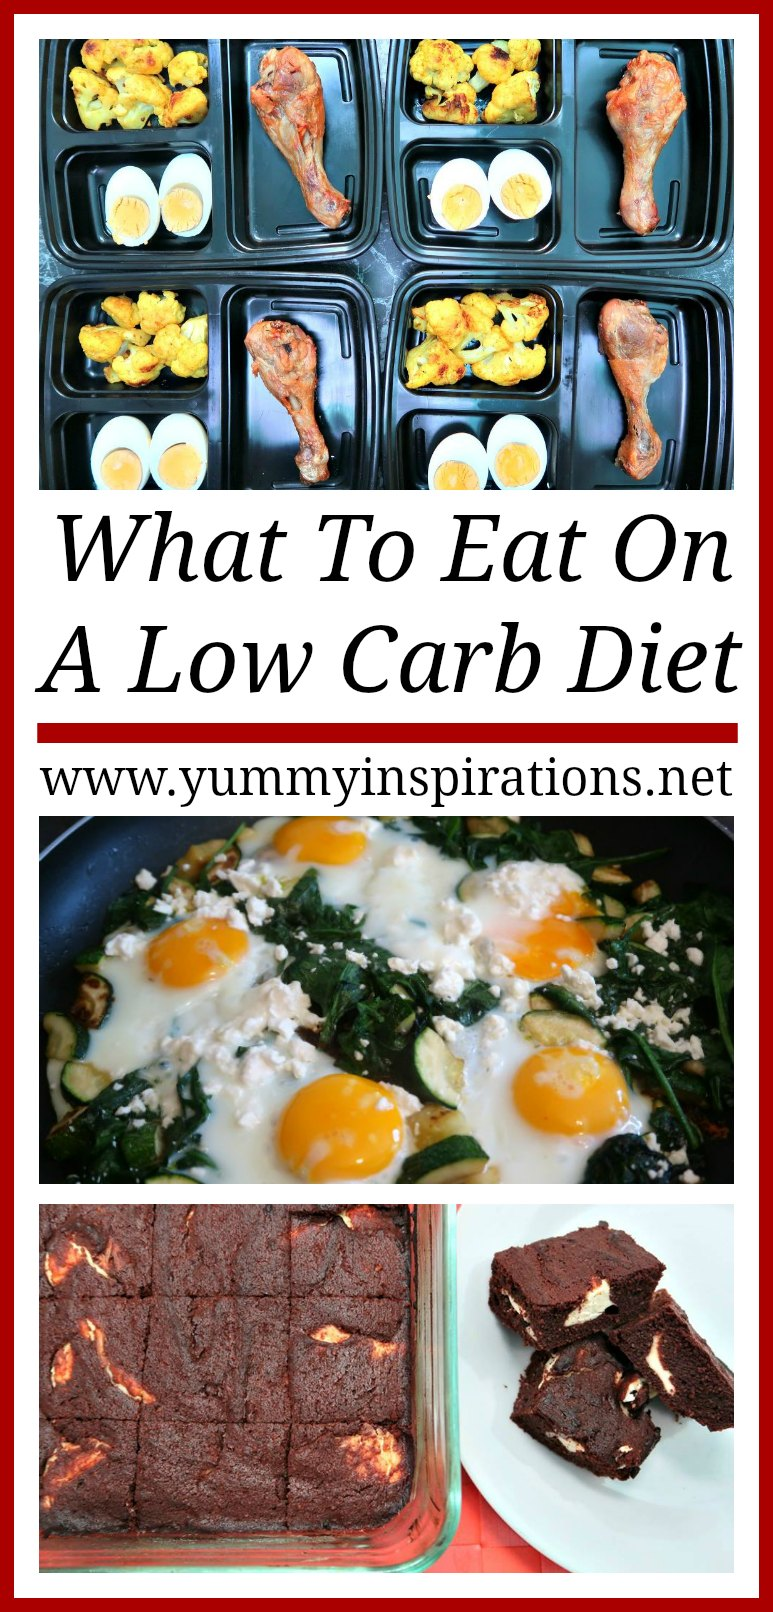 What To Eat On A Low Carb Diet Ideas For Meals Amp What To Avoid